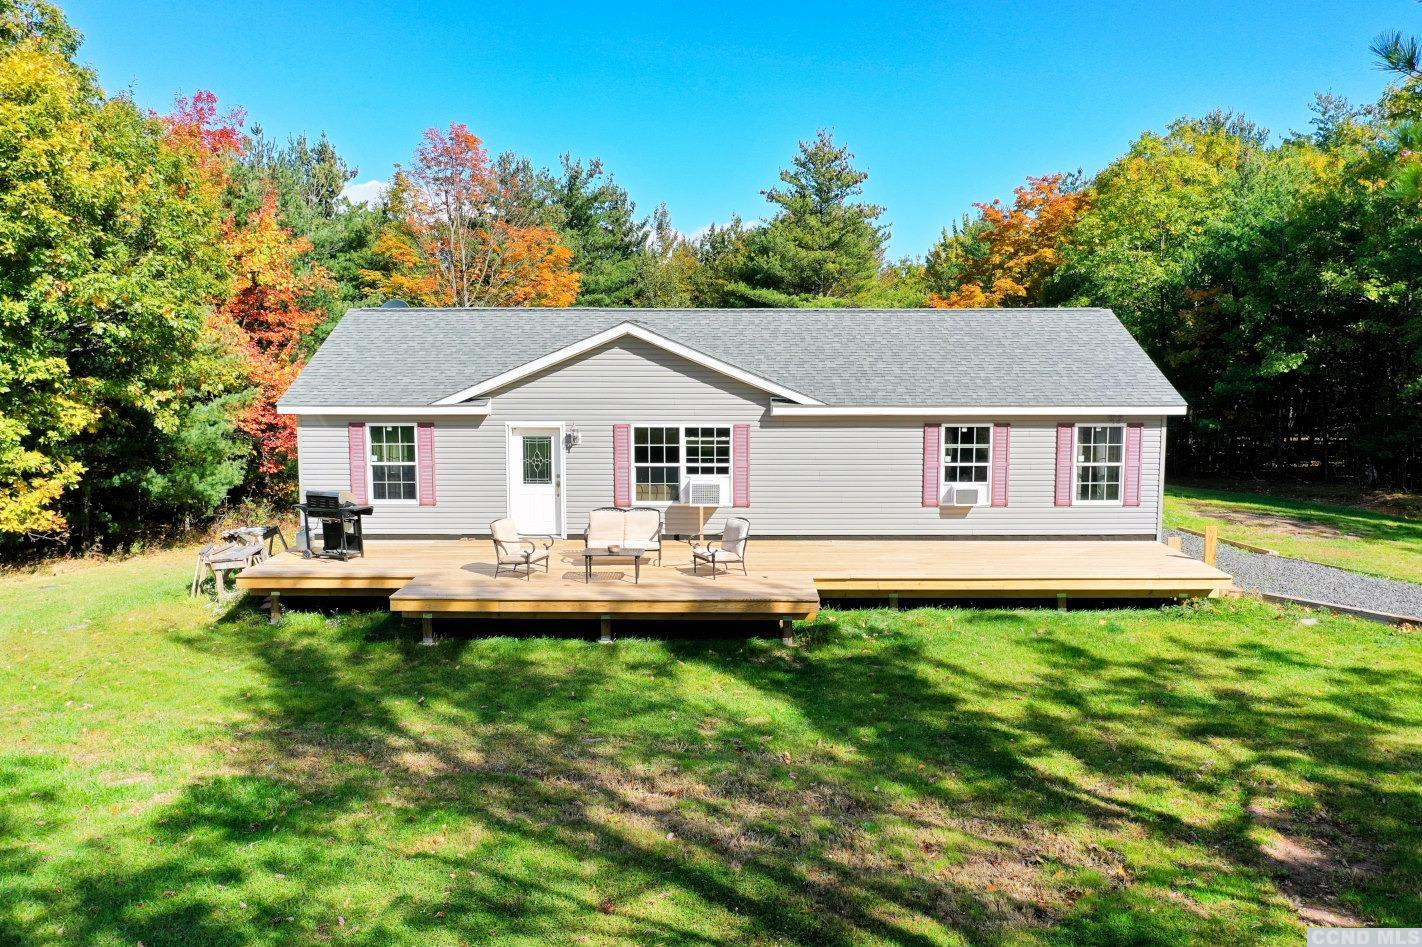 Beauty & Seclusion! A Beautiful Home & Setting Amidst 7 Private Acres. The home features 3 bedrooms - including a master bedroom & bath suite, 2 full baths, a living room, a kitchen with a dining area, a laundry room, a full unfinished walkout basement, and a large front deck. The home was built in 2013 and has cable internet. It's 15 minutes to Windham Ski Mountain and 10 minutes to Zoom Flume Water Park. It's an Amazing Property with Beautiful Landscapes & Mountain Views!